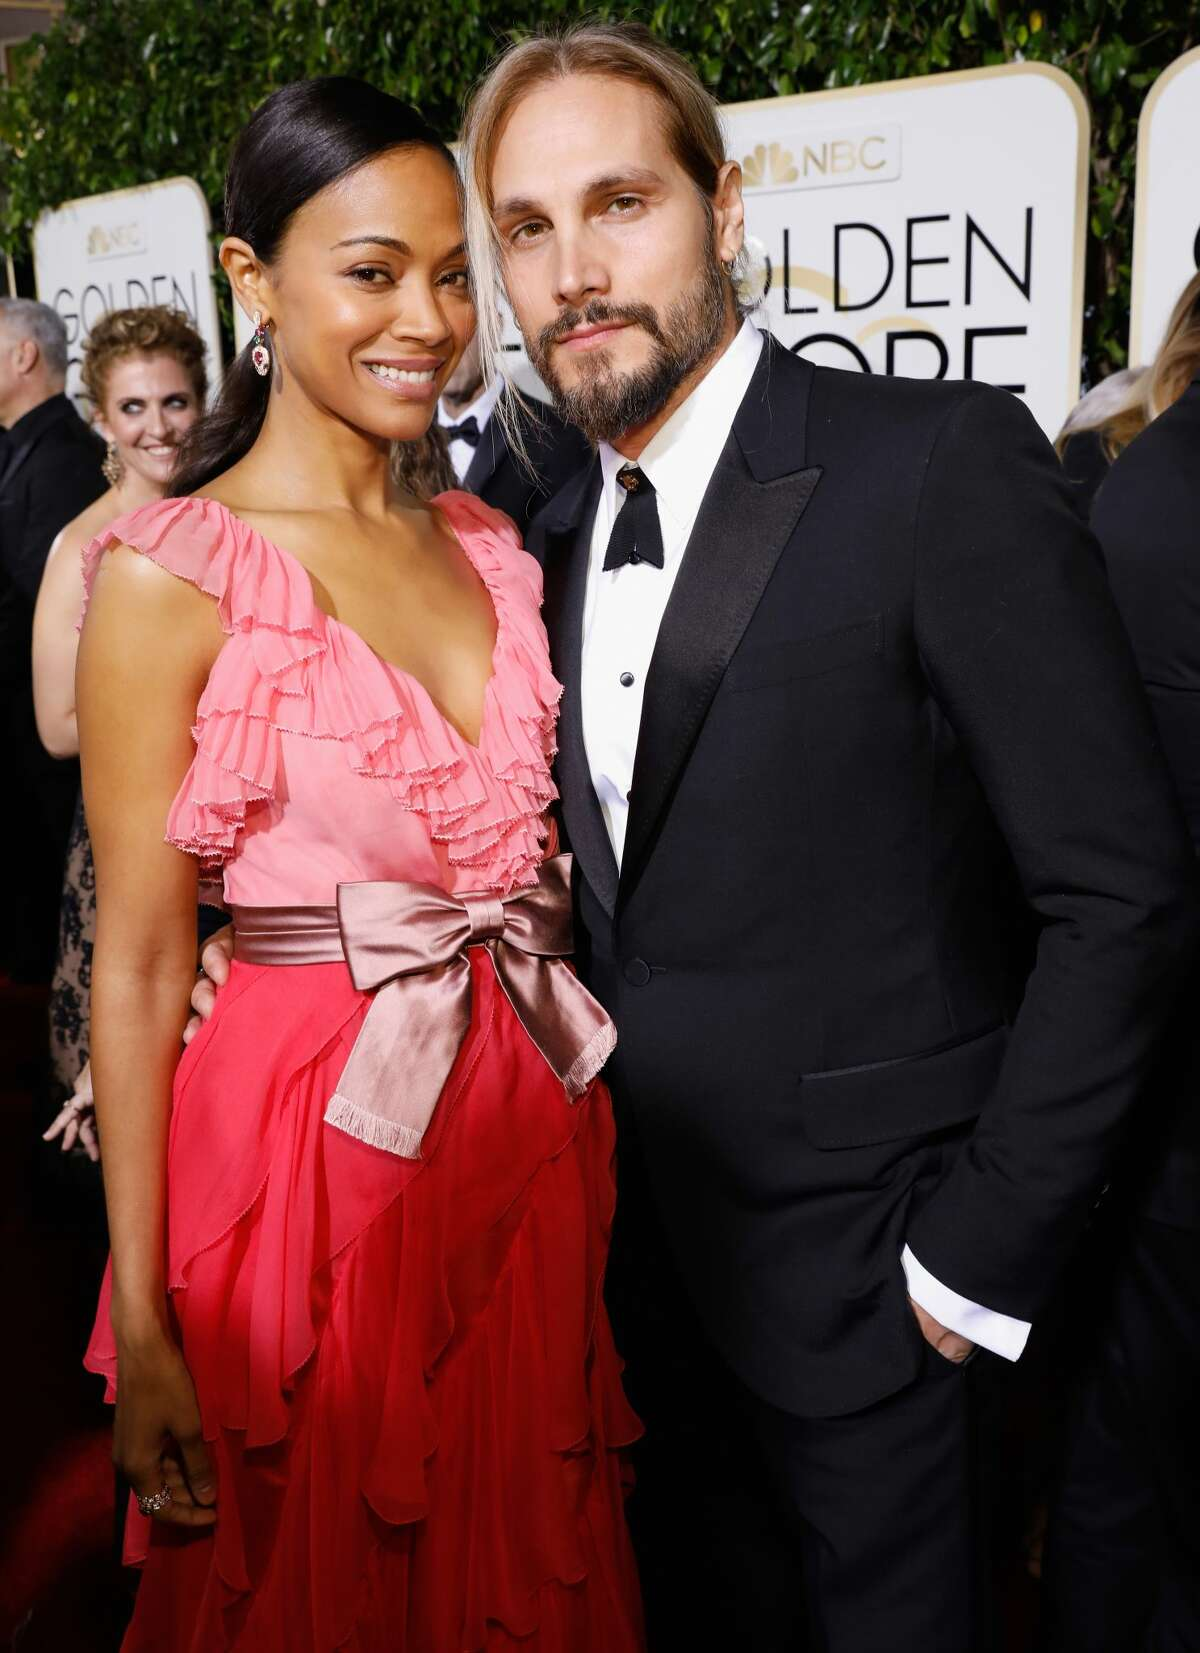 Actress Zoe Saldana and artist Marco Perego arrive at the 74th Annual Golden Globe Awards held at the Beverly Hilton Hotel on January 8, 2017.